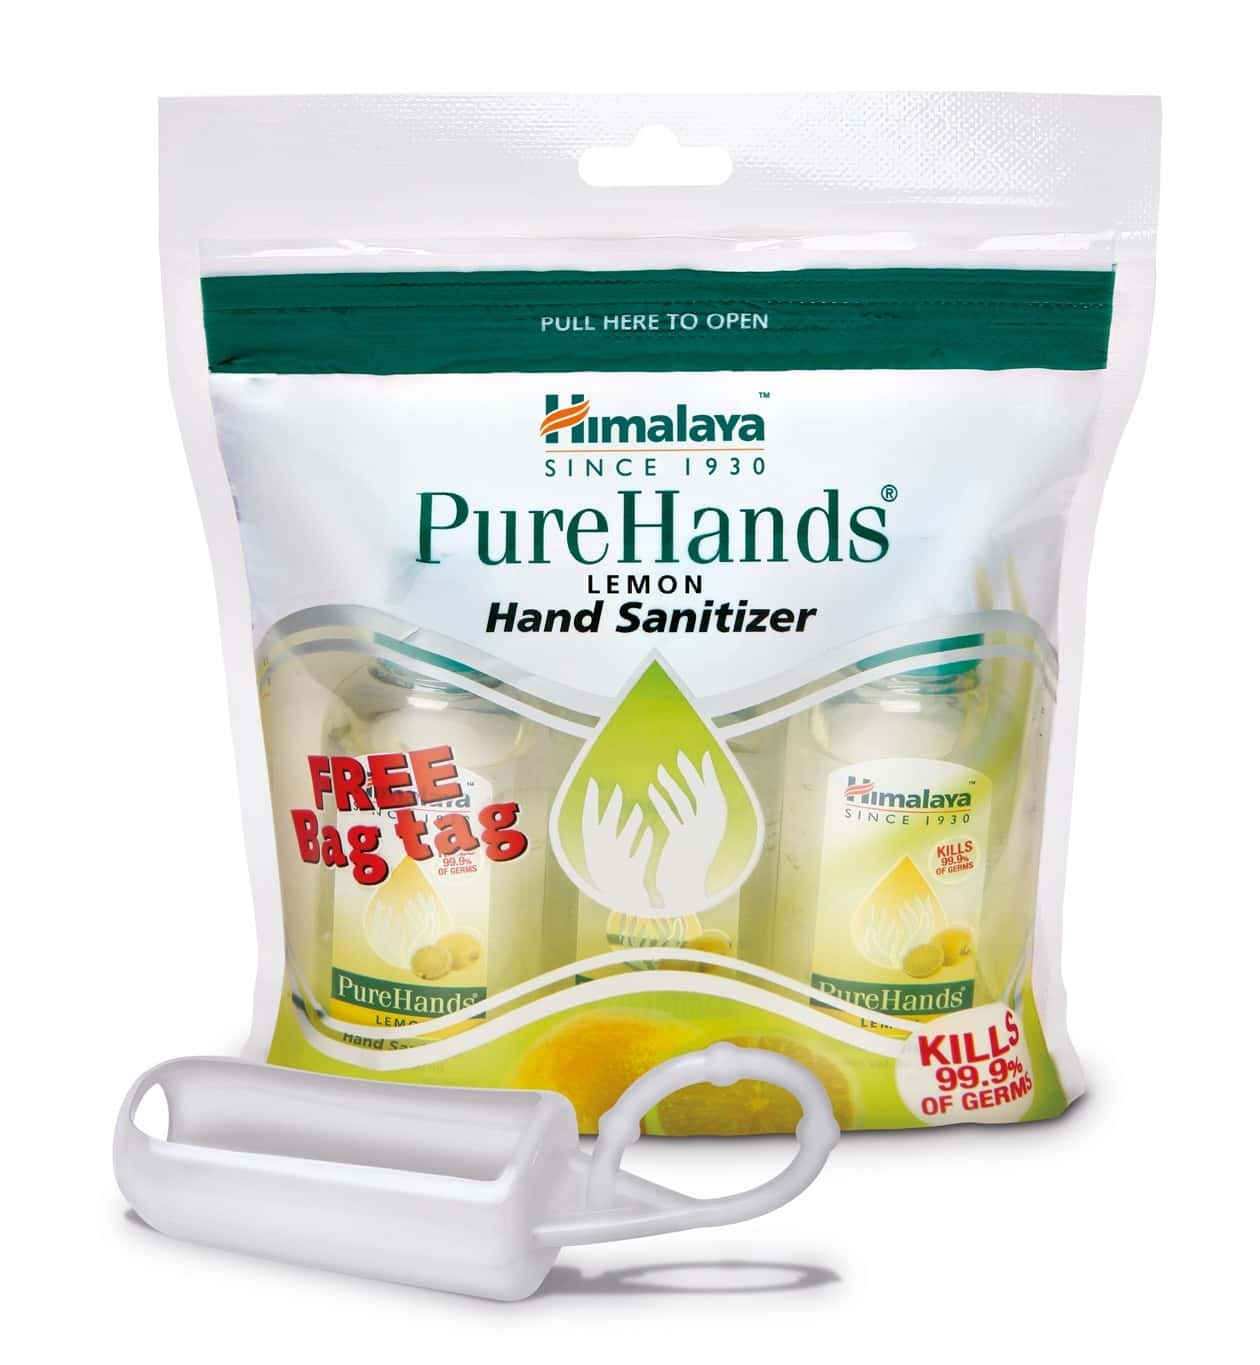 Himalaya Wellness Purehands (3x30 Ml - Lemon) - Hand Sanitizer